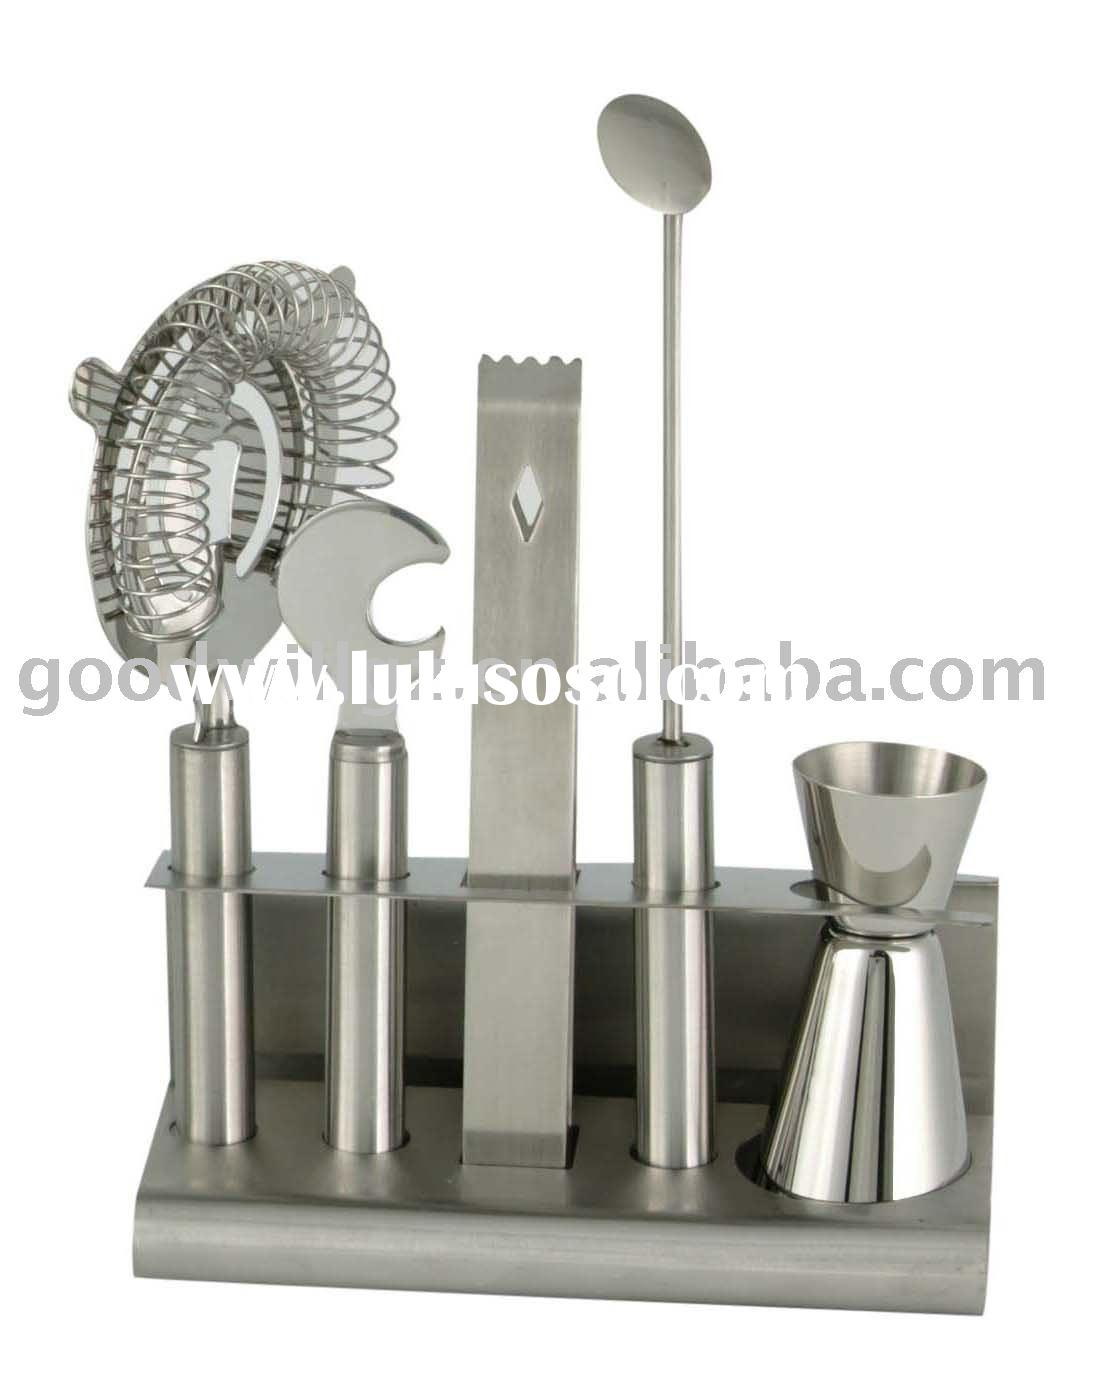 Stainless steel 6pcs Bar Accessories Set